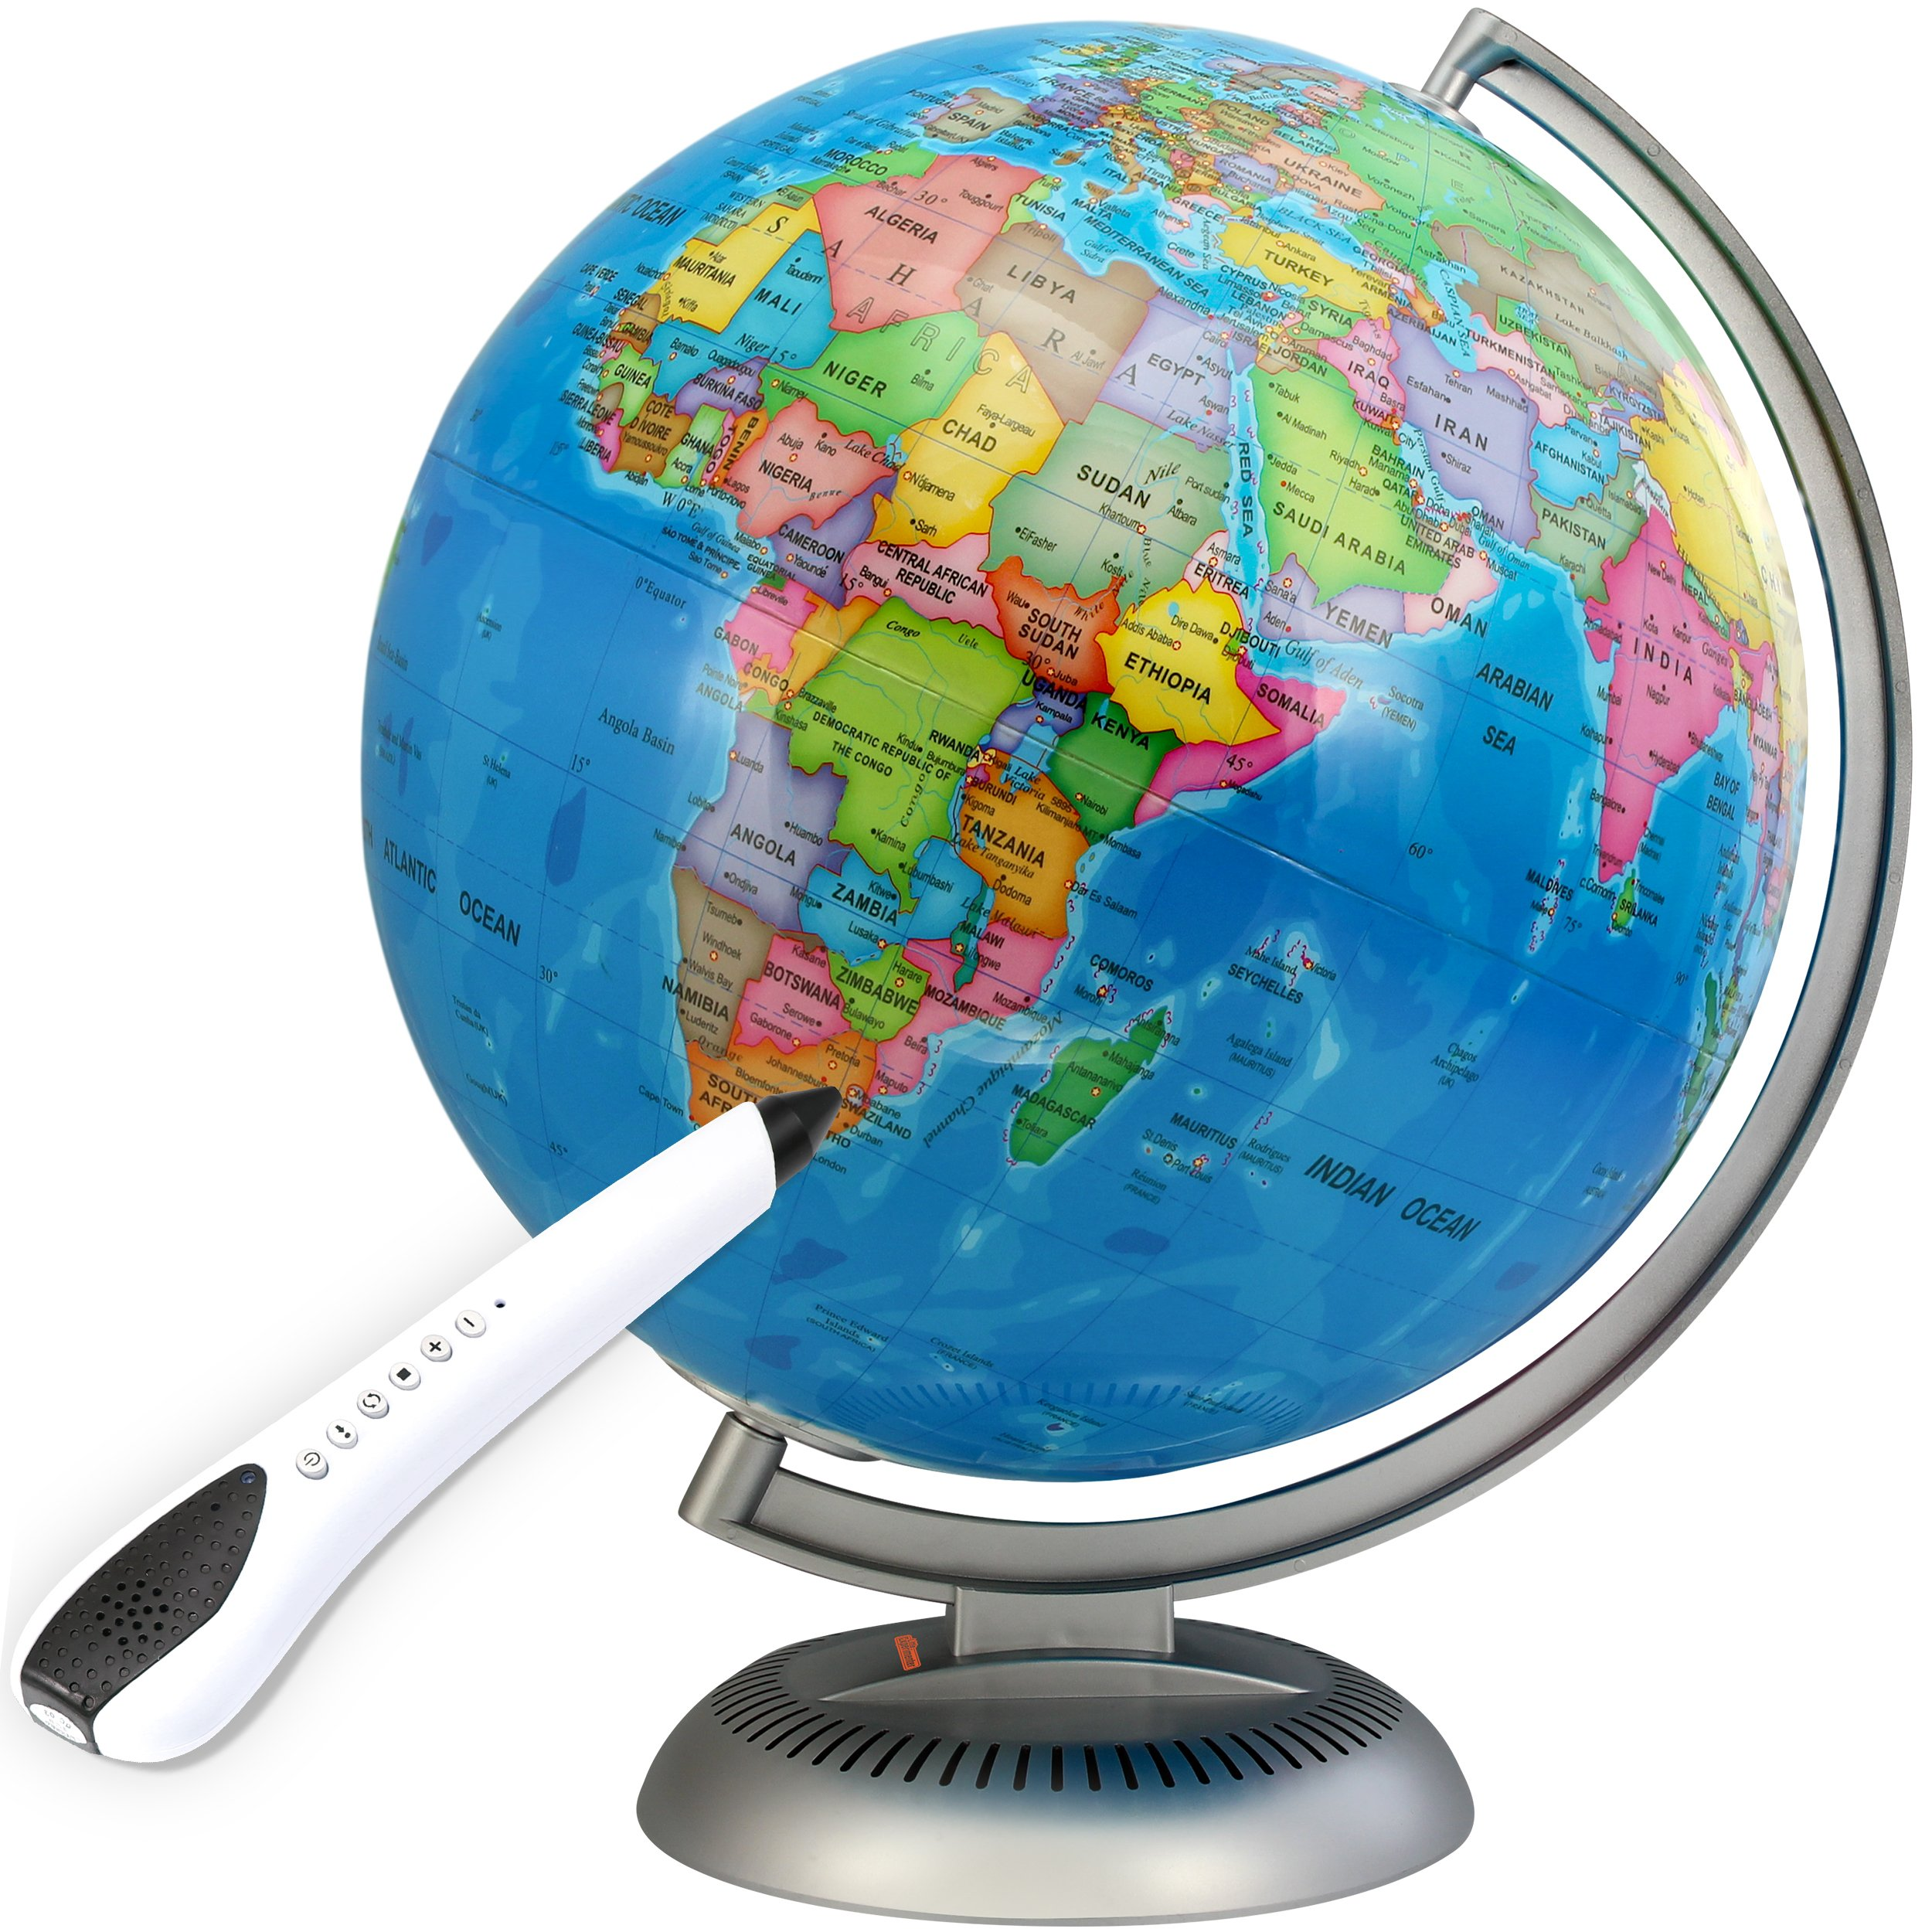 Illuminated Interactive Globe with Talking Smart Pen - 12'' World Globe Built in LED Light for Night View by Little Experimenter